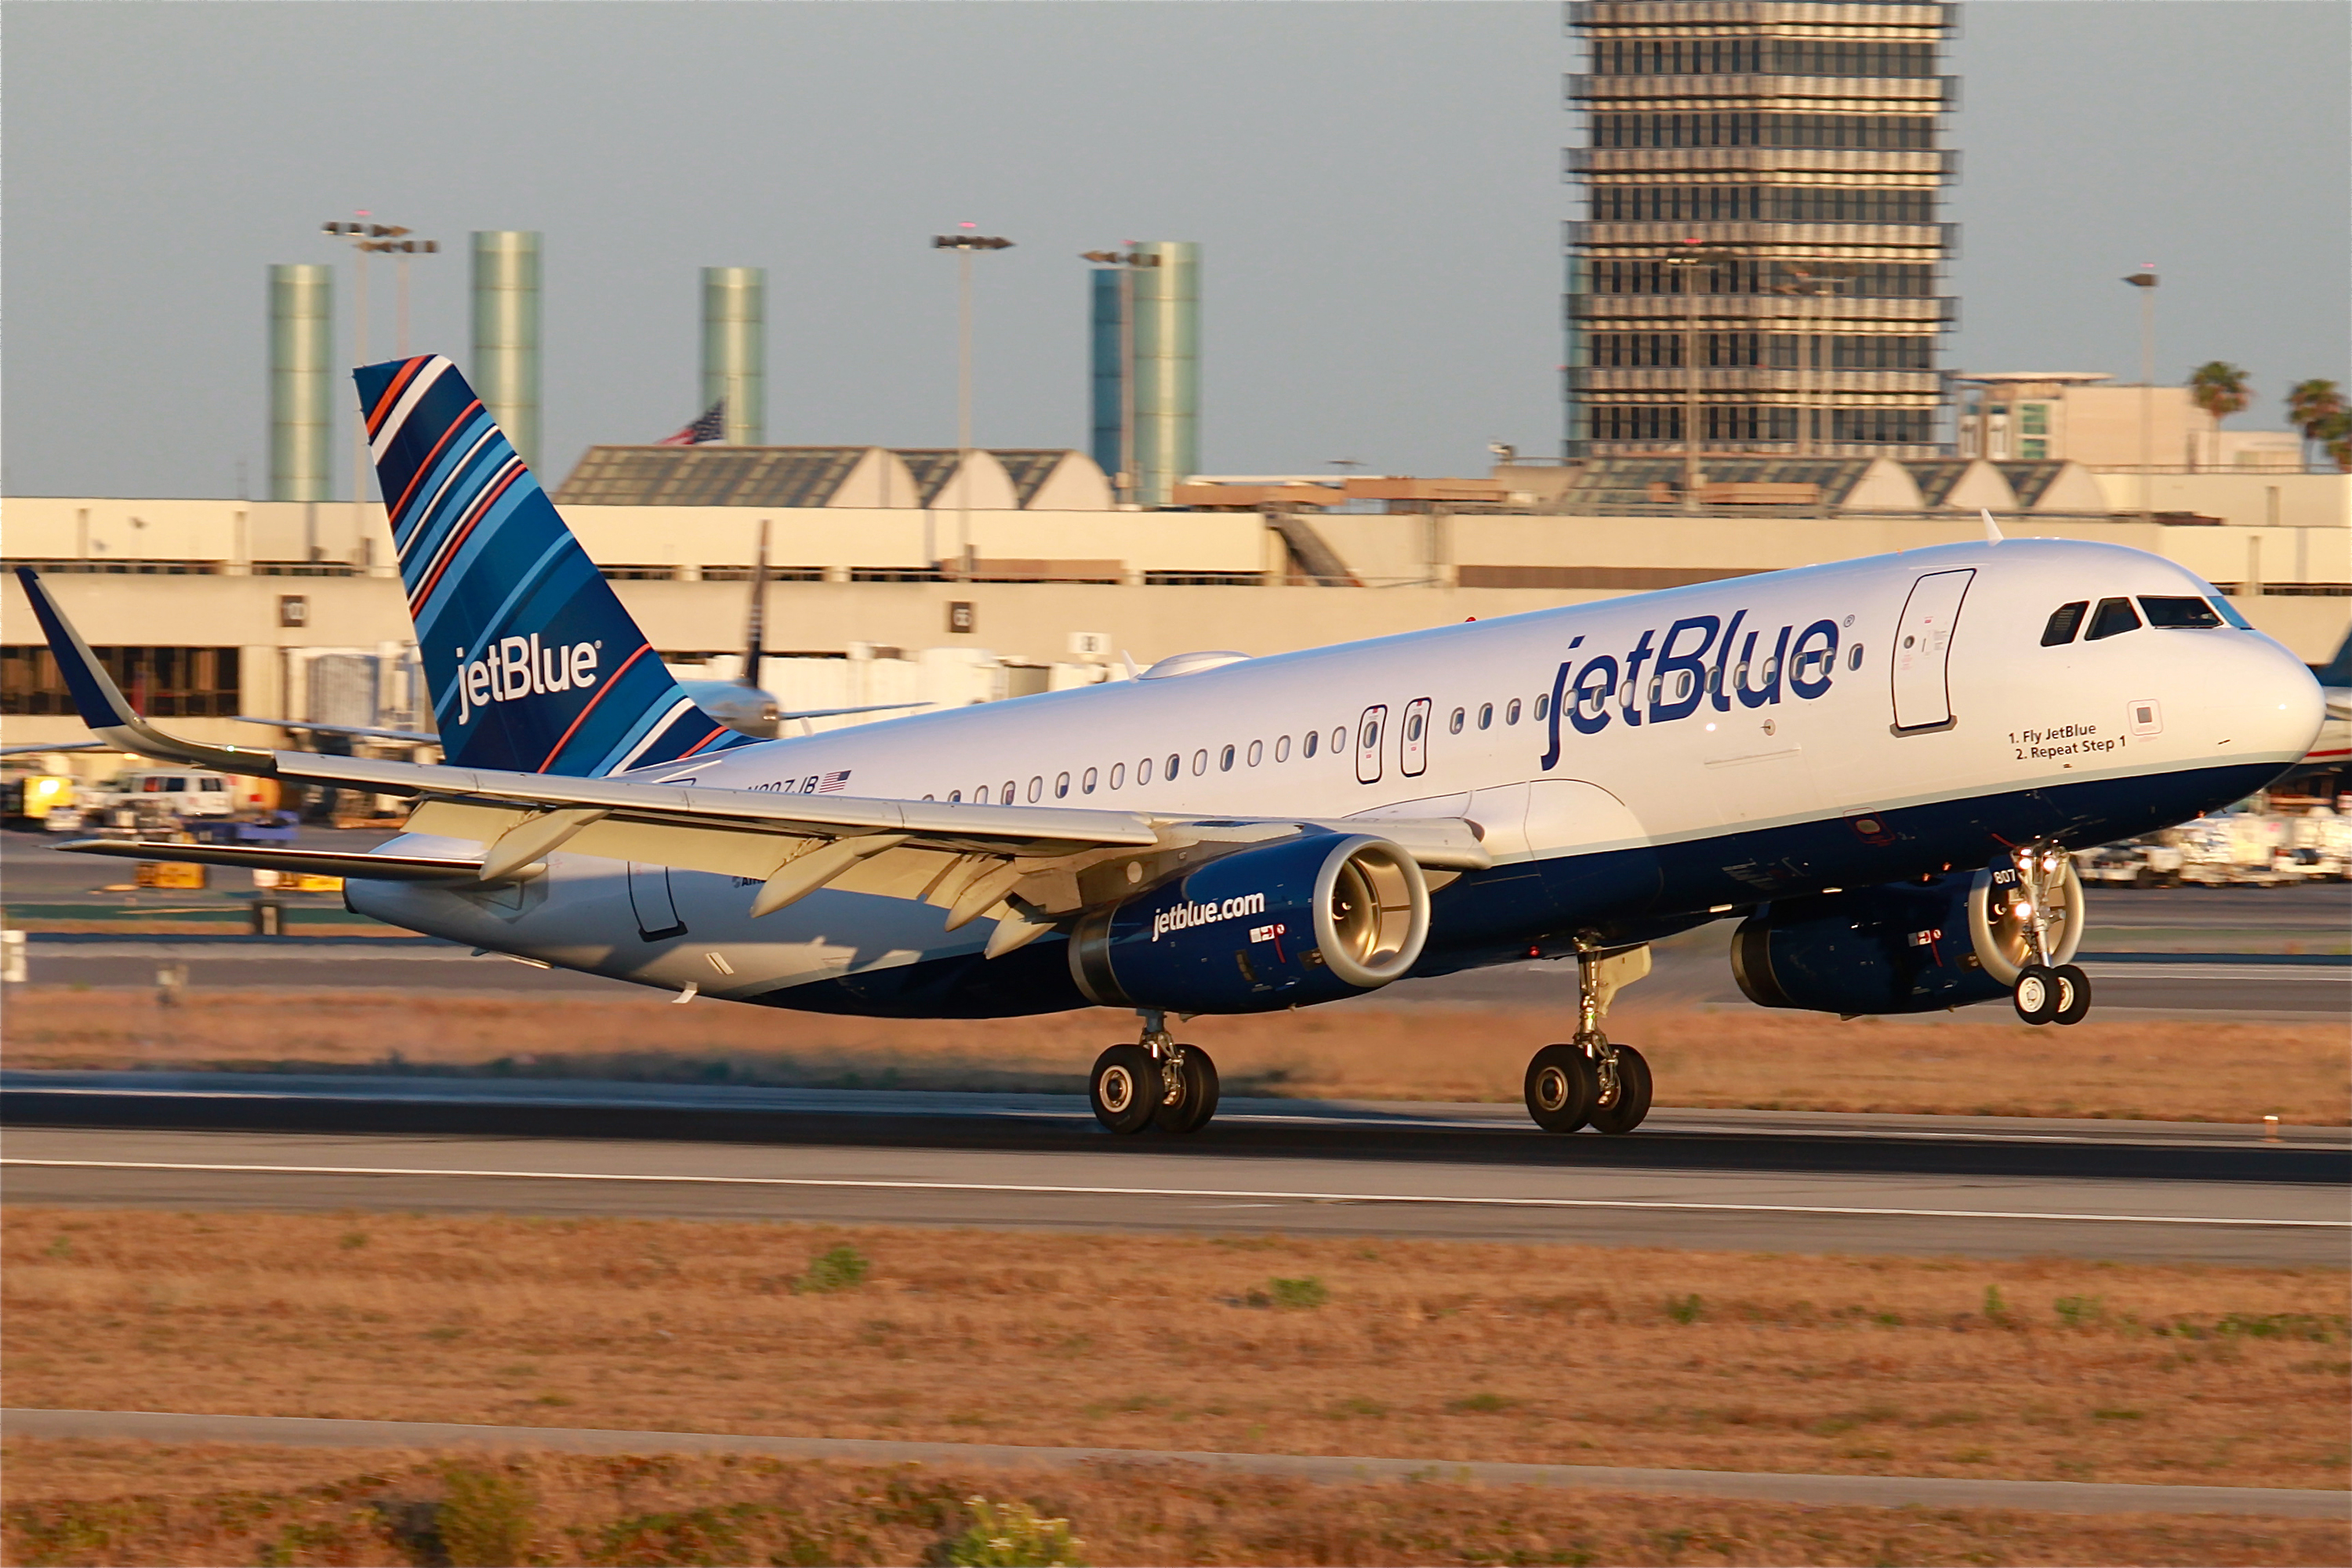 jetblue airlines the biggest airline Watch video in the 1990s, he was one of the founders of westjet, now canada's second-biggest airline and, after departing jetblue, neeleman founded azul brazilian airlines in 2008 neeleman remains ceo of.